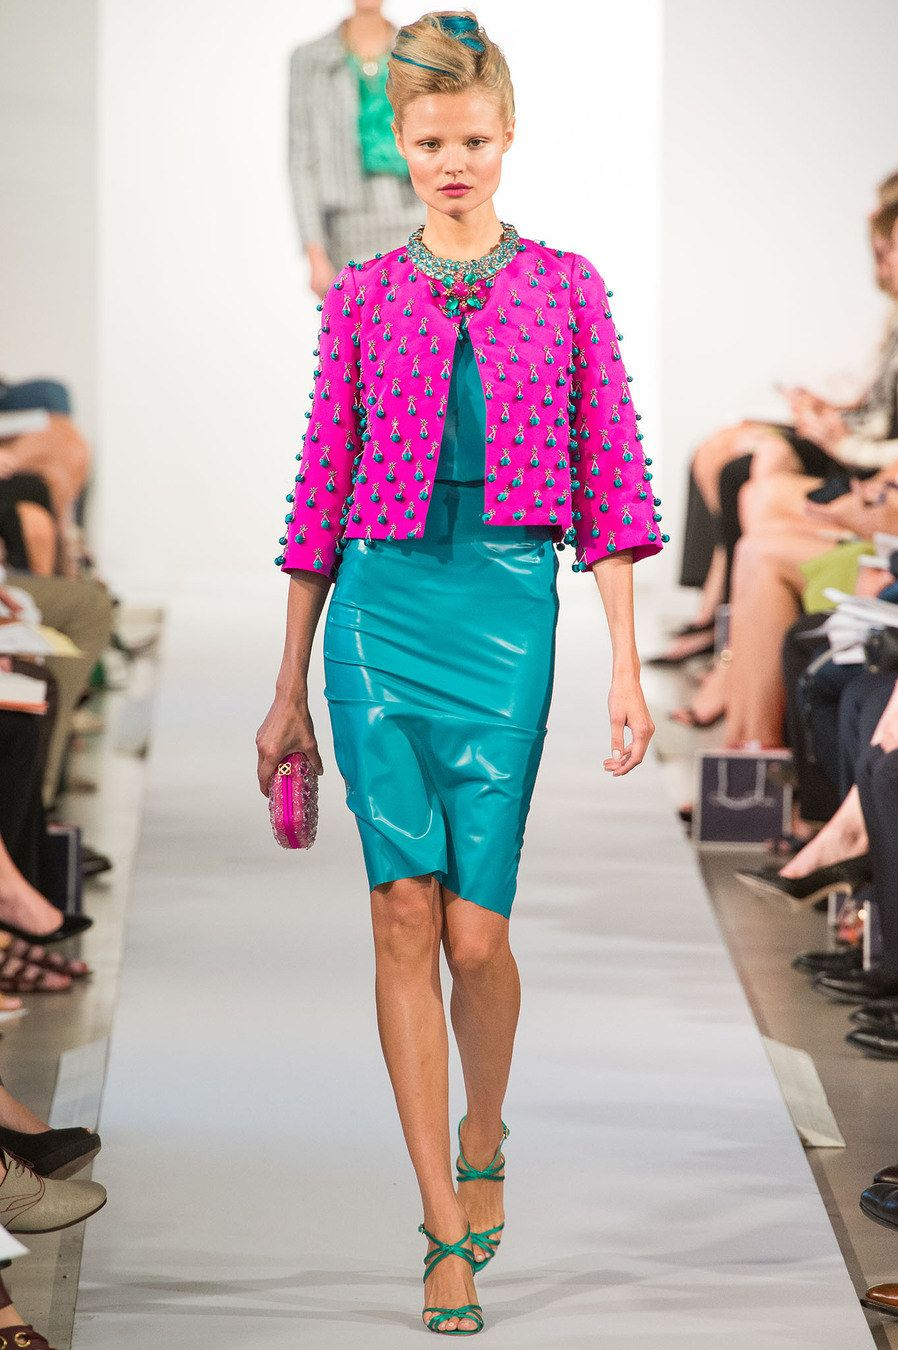 Oscar de la Renta Spring 2013 Ready-to-Wear Fashion Show - Magdalena Frackowiak